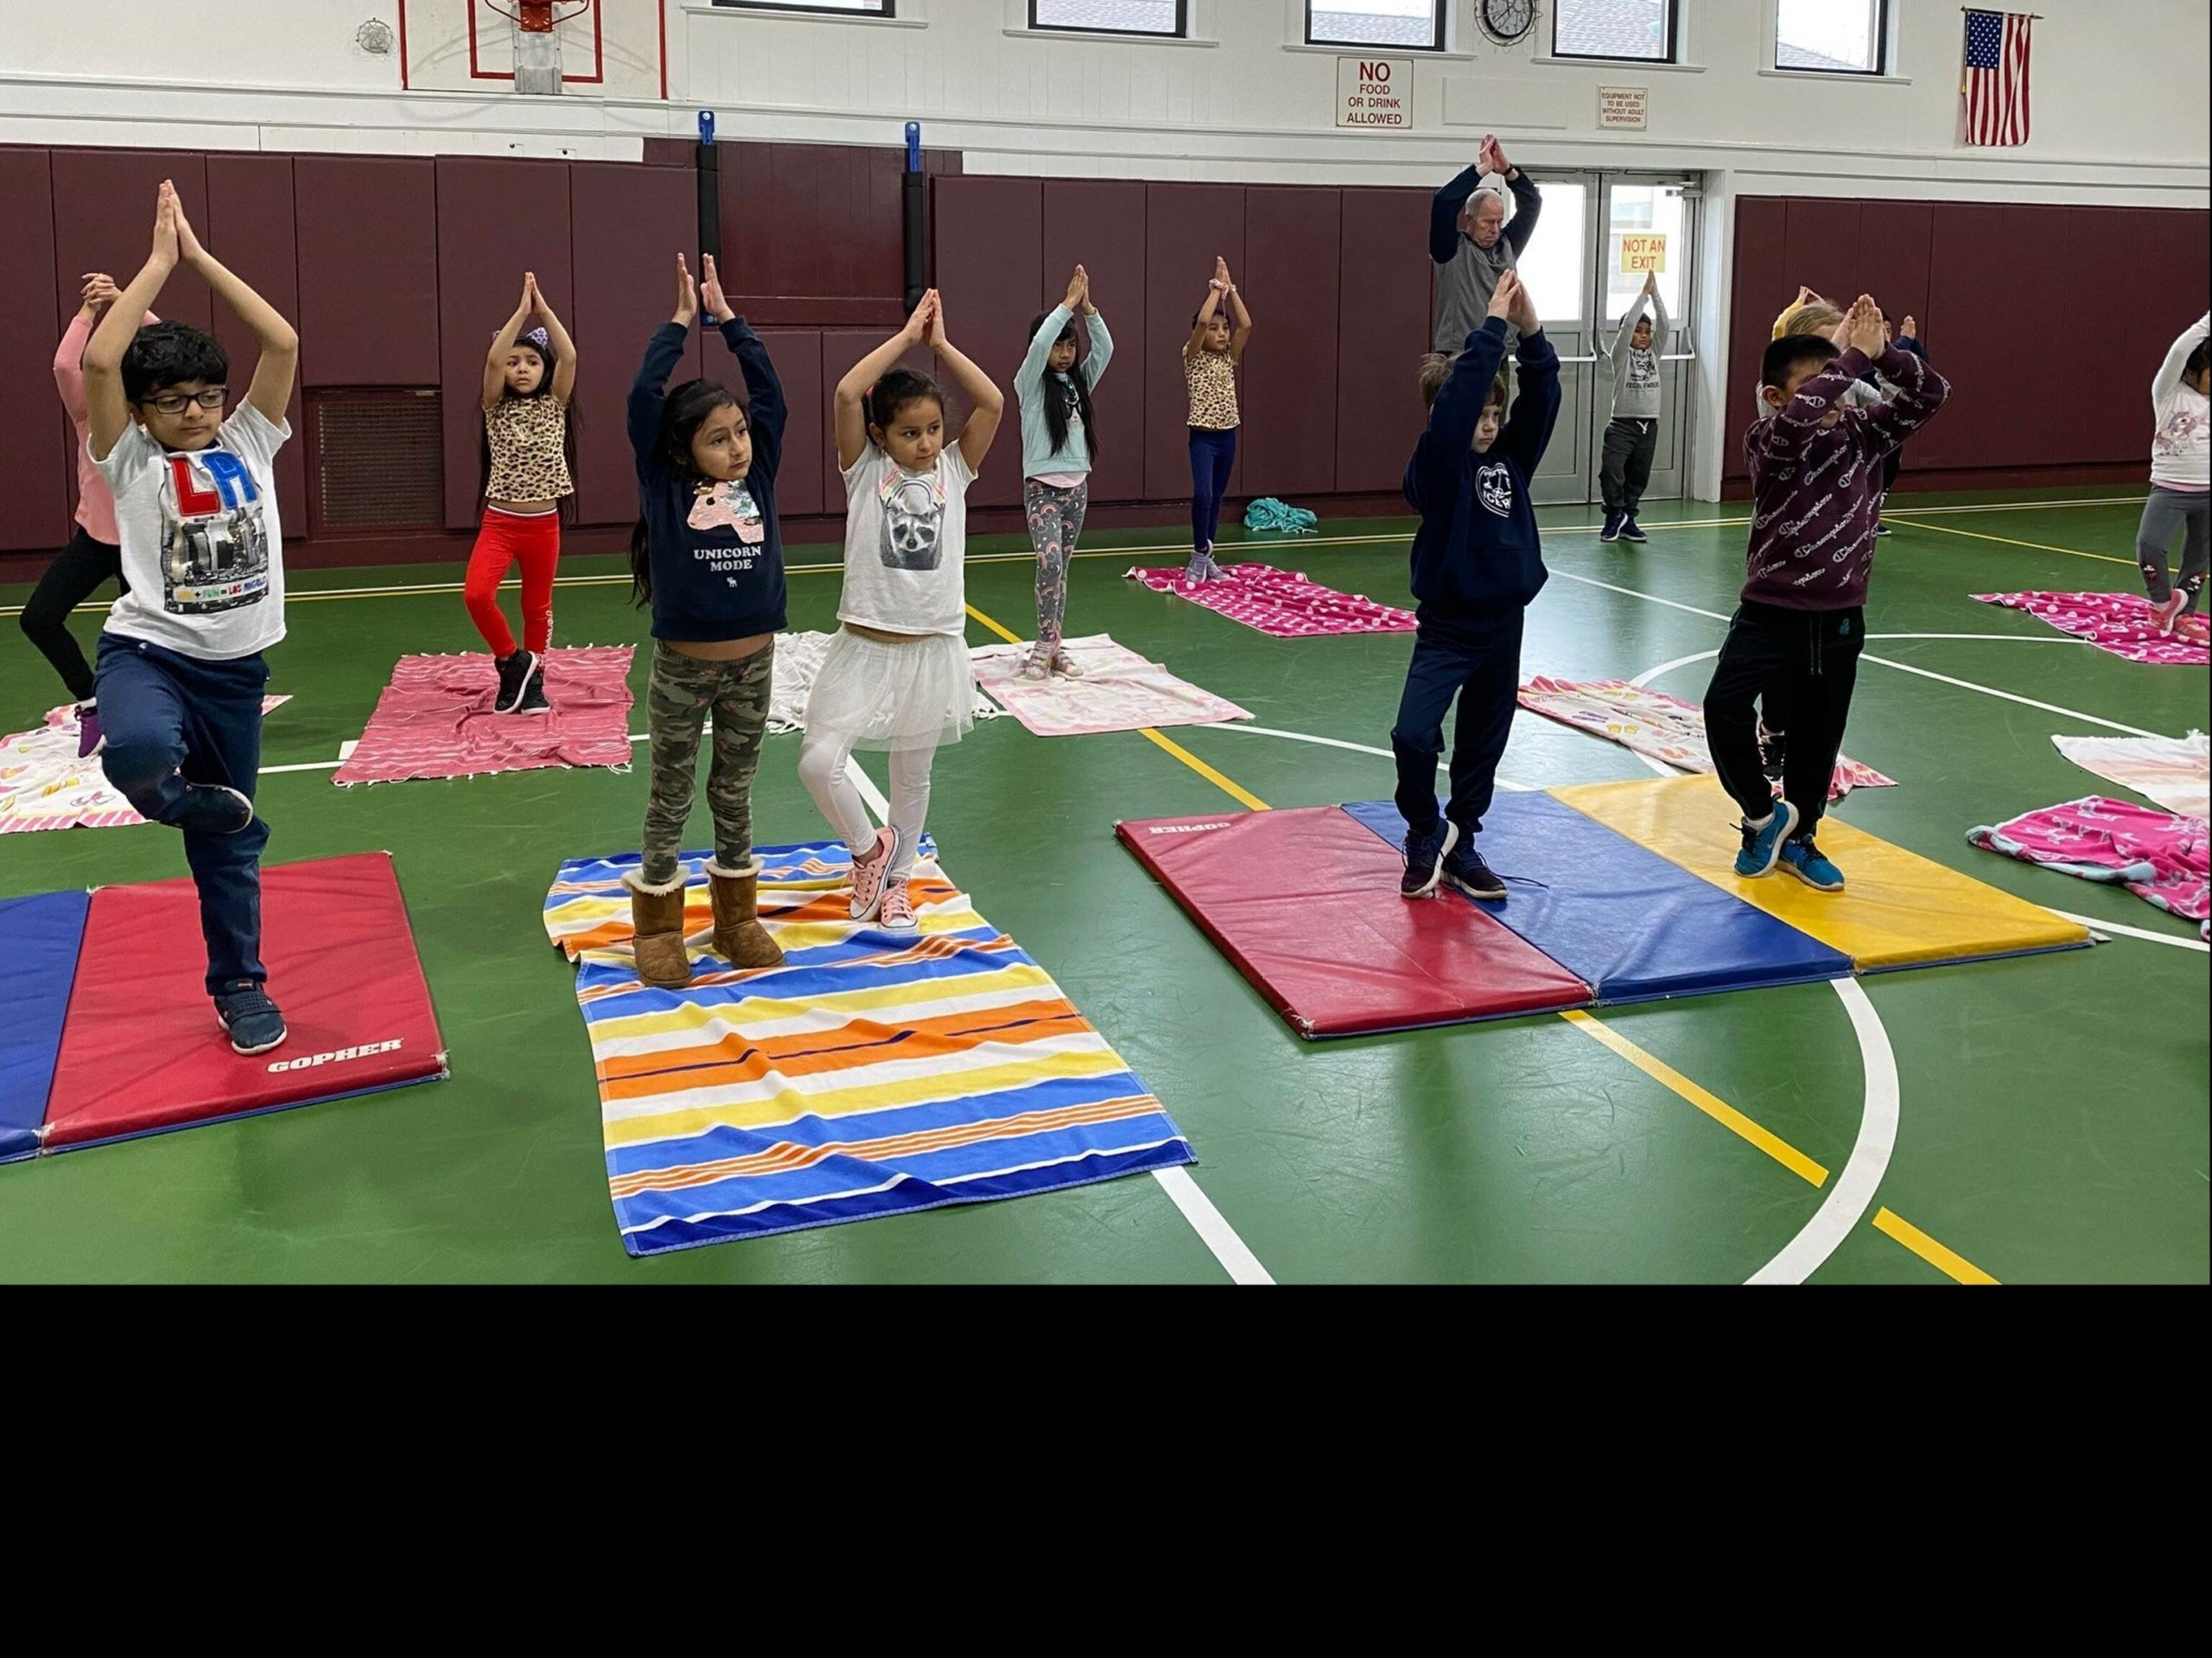 The Tuckahoe Educational Foundation and the Tuckahoe PTO funded four days of yoga for all students at Tuckahoe School. Under the guidance of Angela Polchinski and Marcus Lapianna, the students learned how to use their breath to help them relax in difficult situations, and learned balance techniques and stretches.